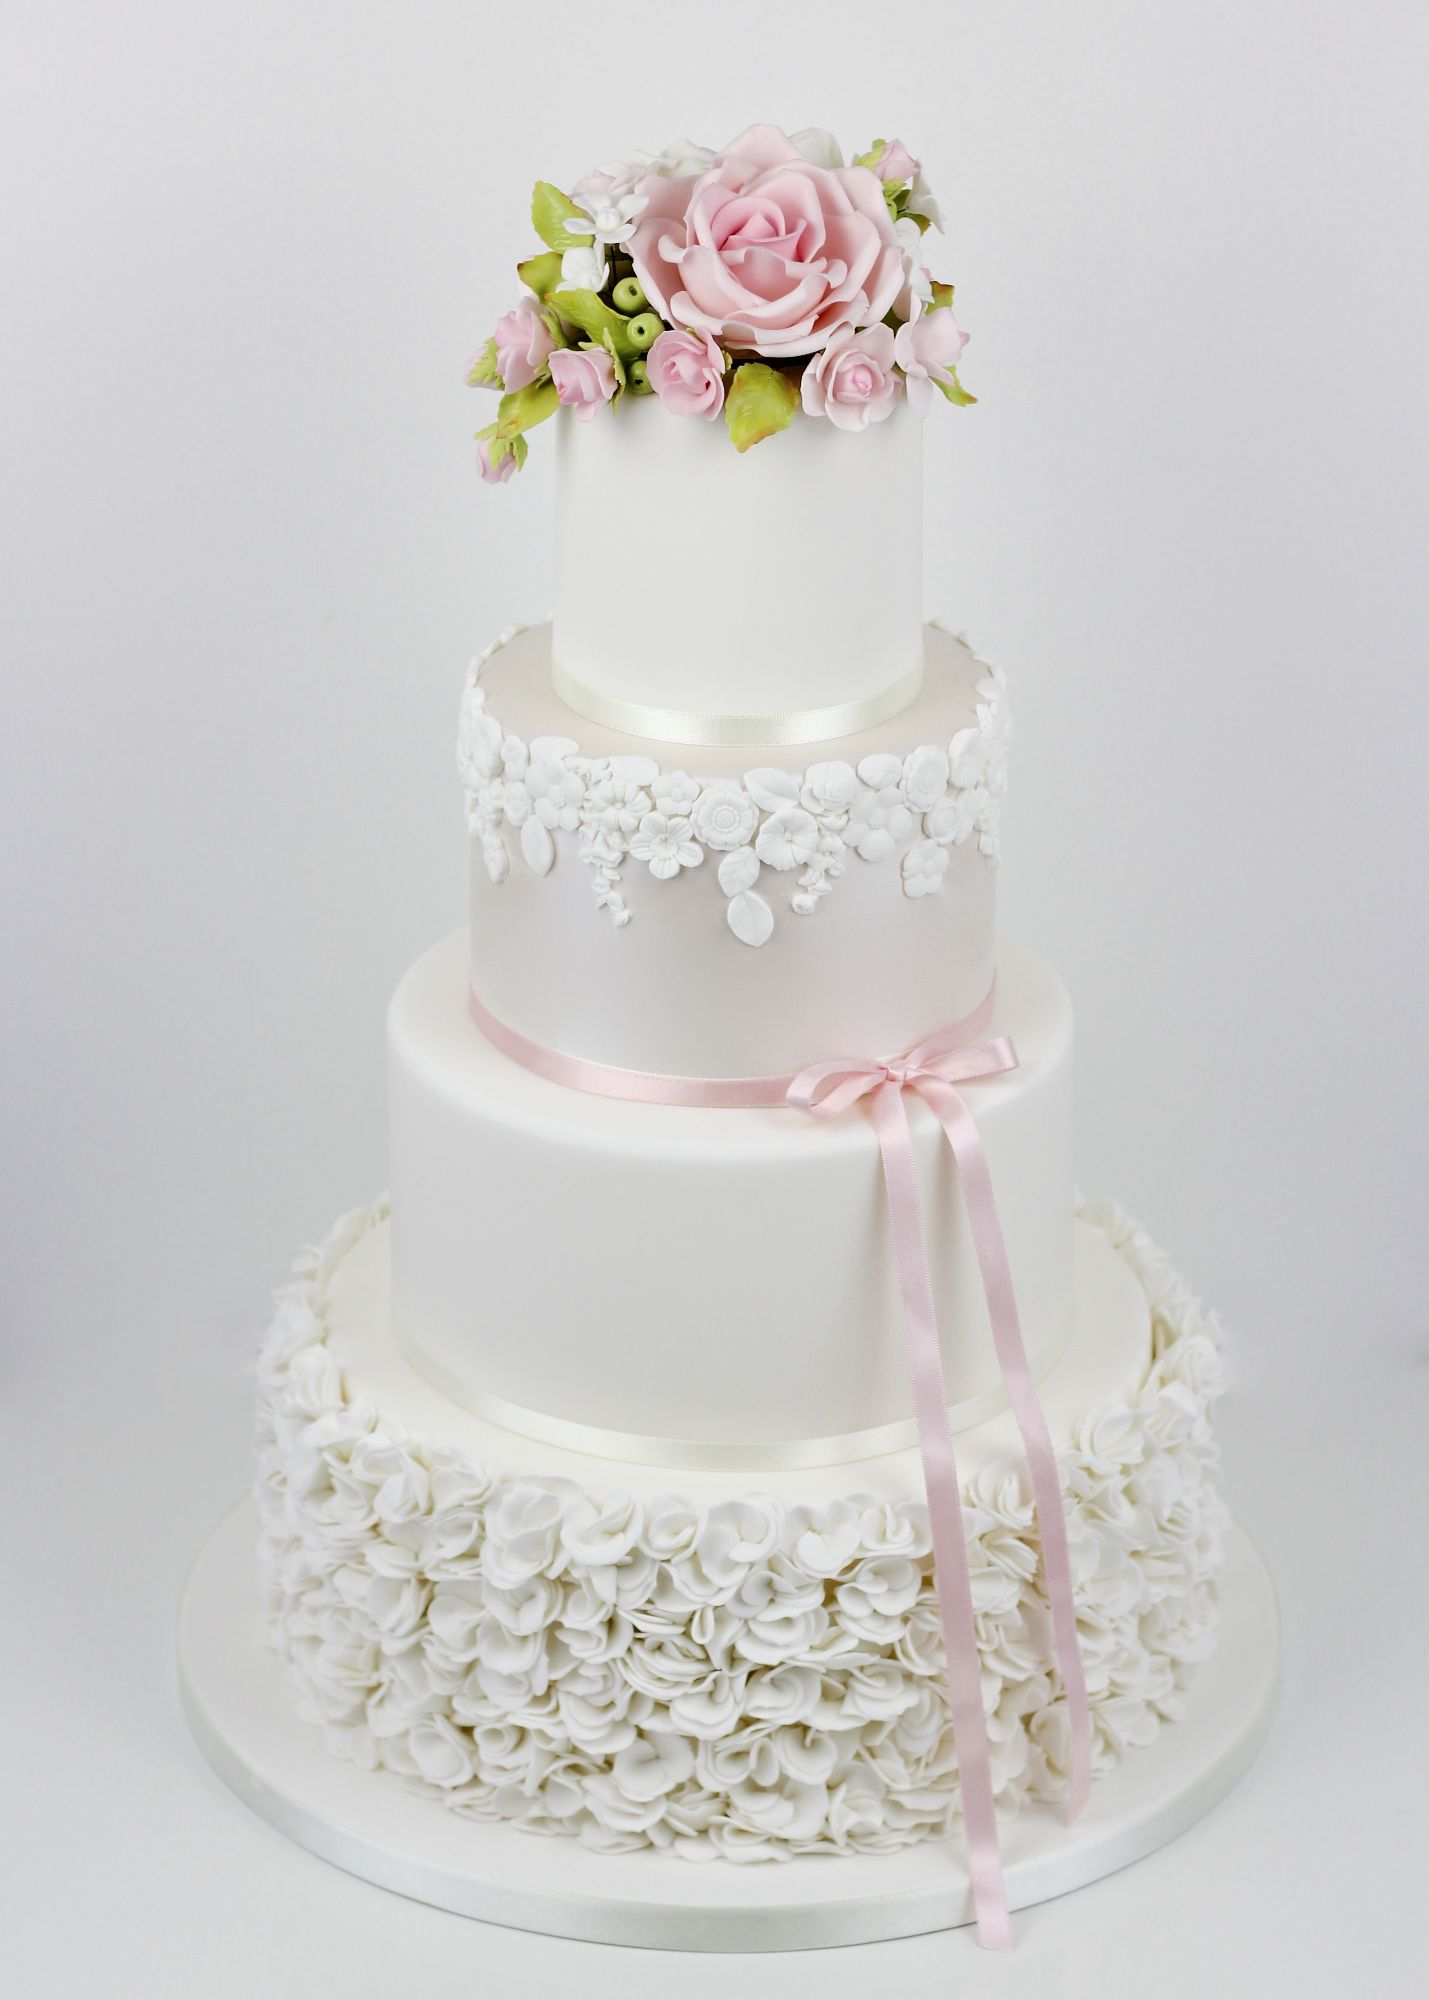 Scrunched ruffles with lustre and  rose topper